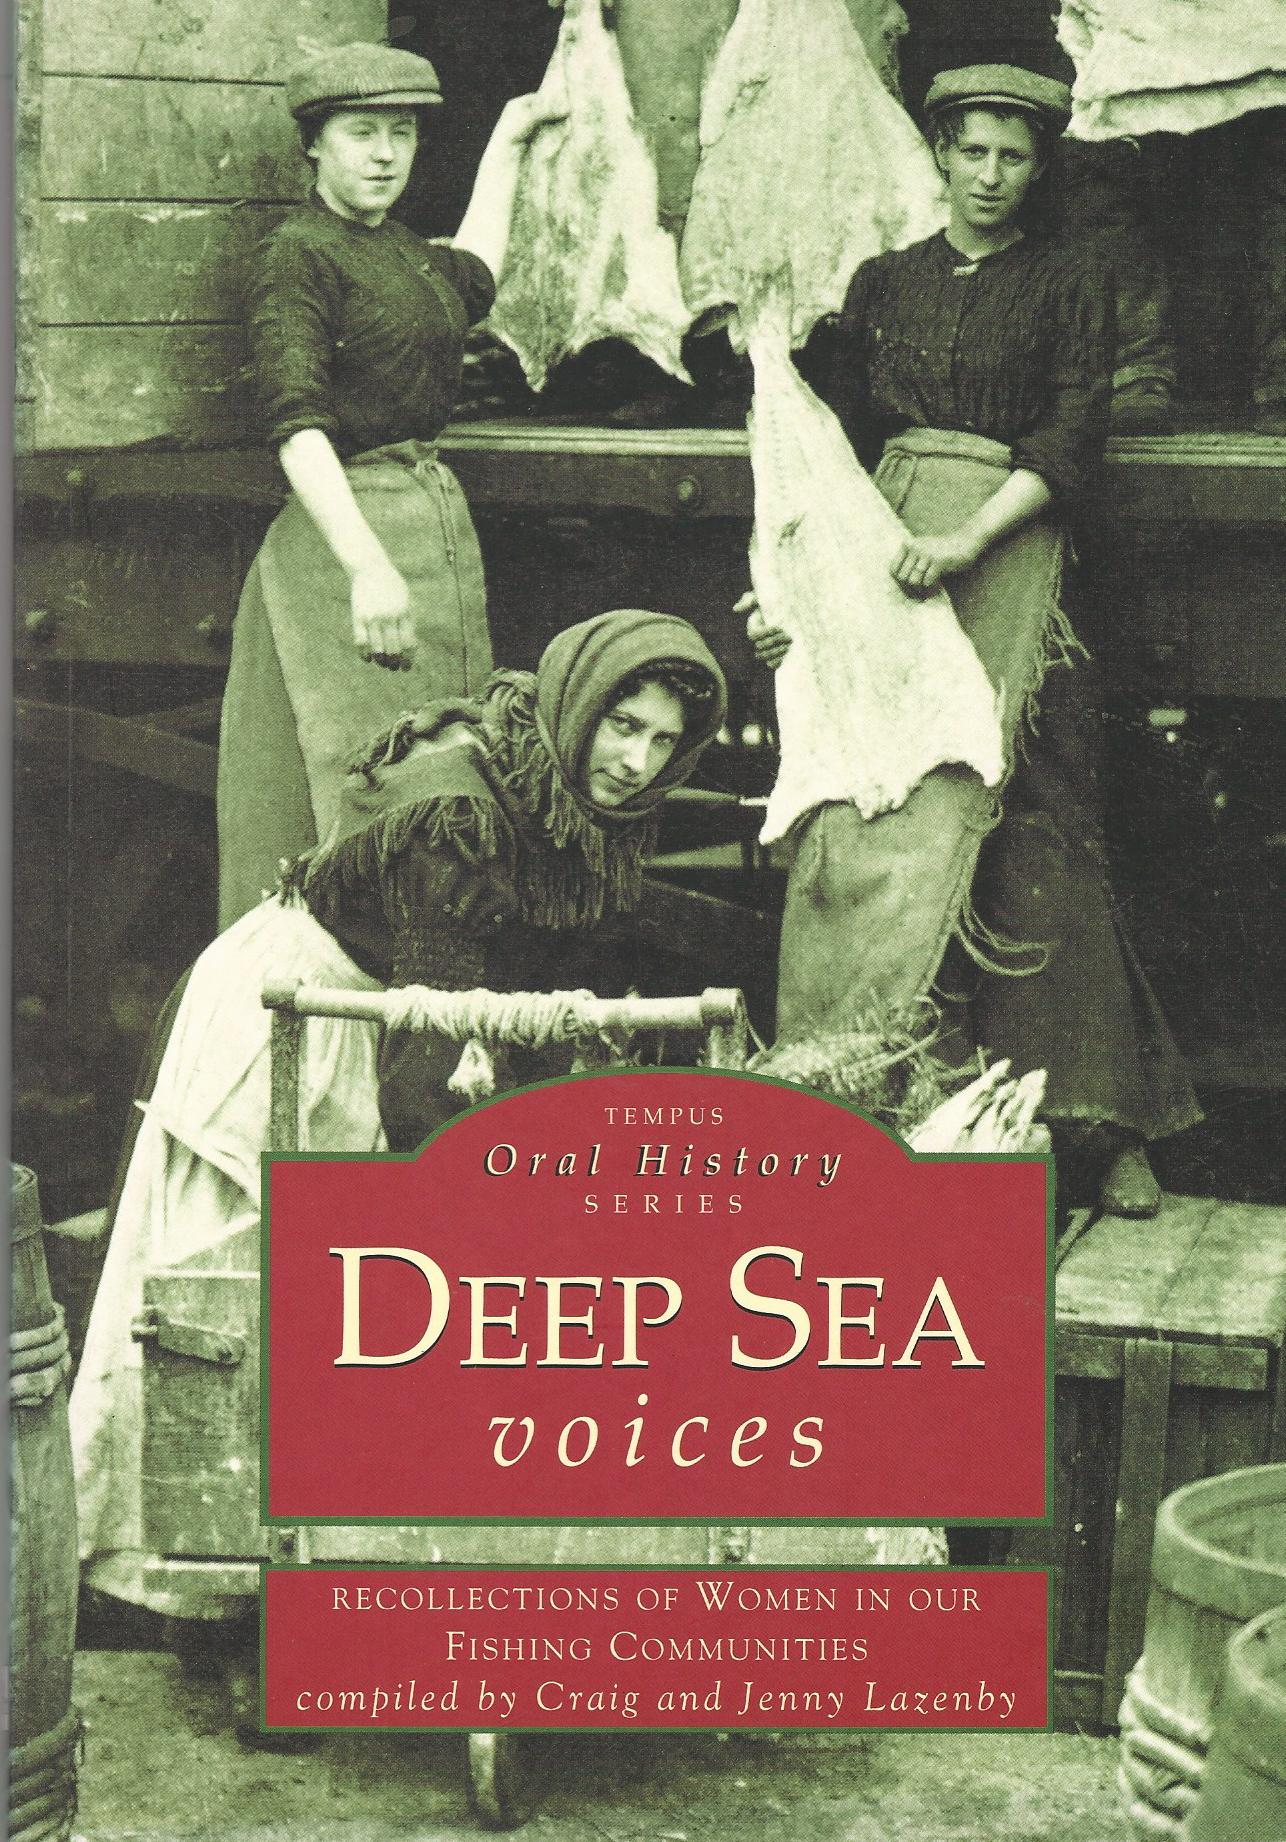 Image for Deep Sea Voices: Recollections of Women in Our Fishing Communities.